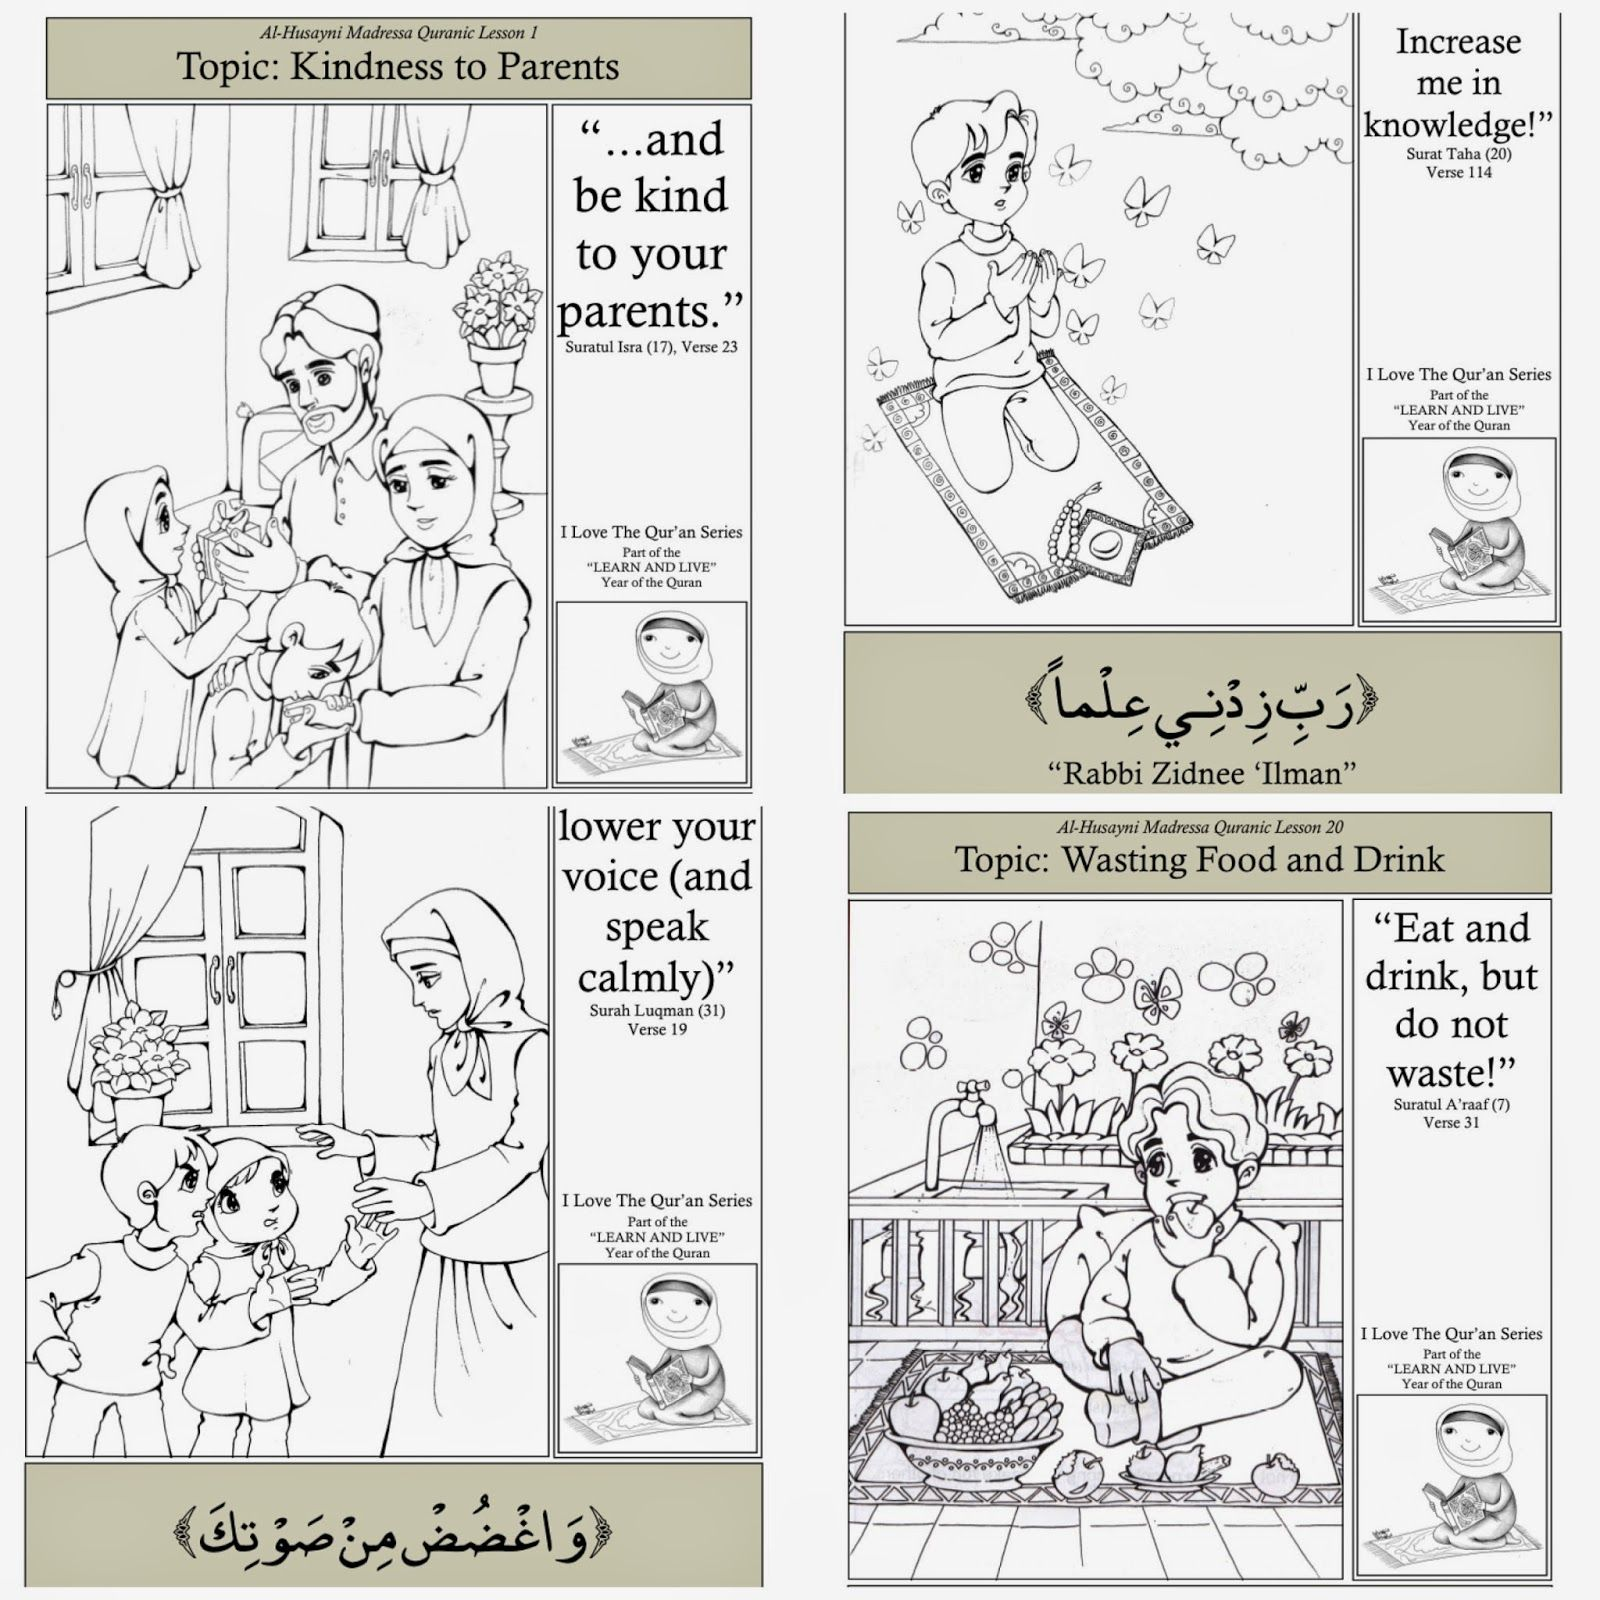 50 Quranic Lessons (With images) | Verses for kids, Muslim ...